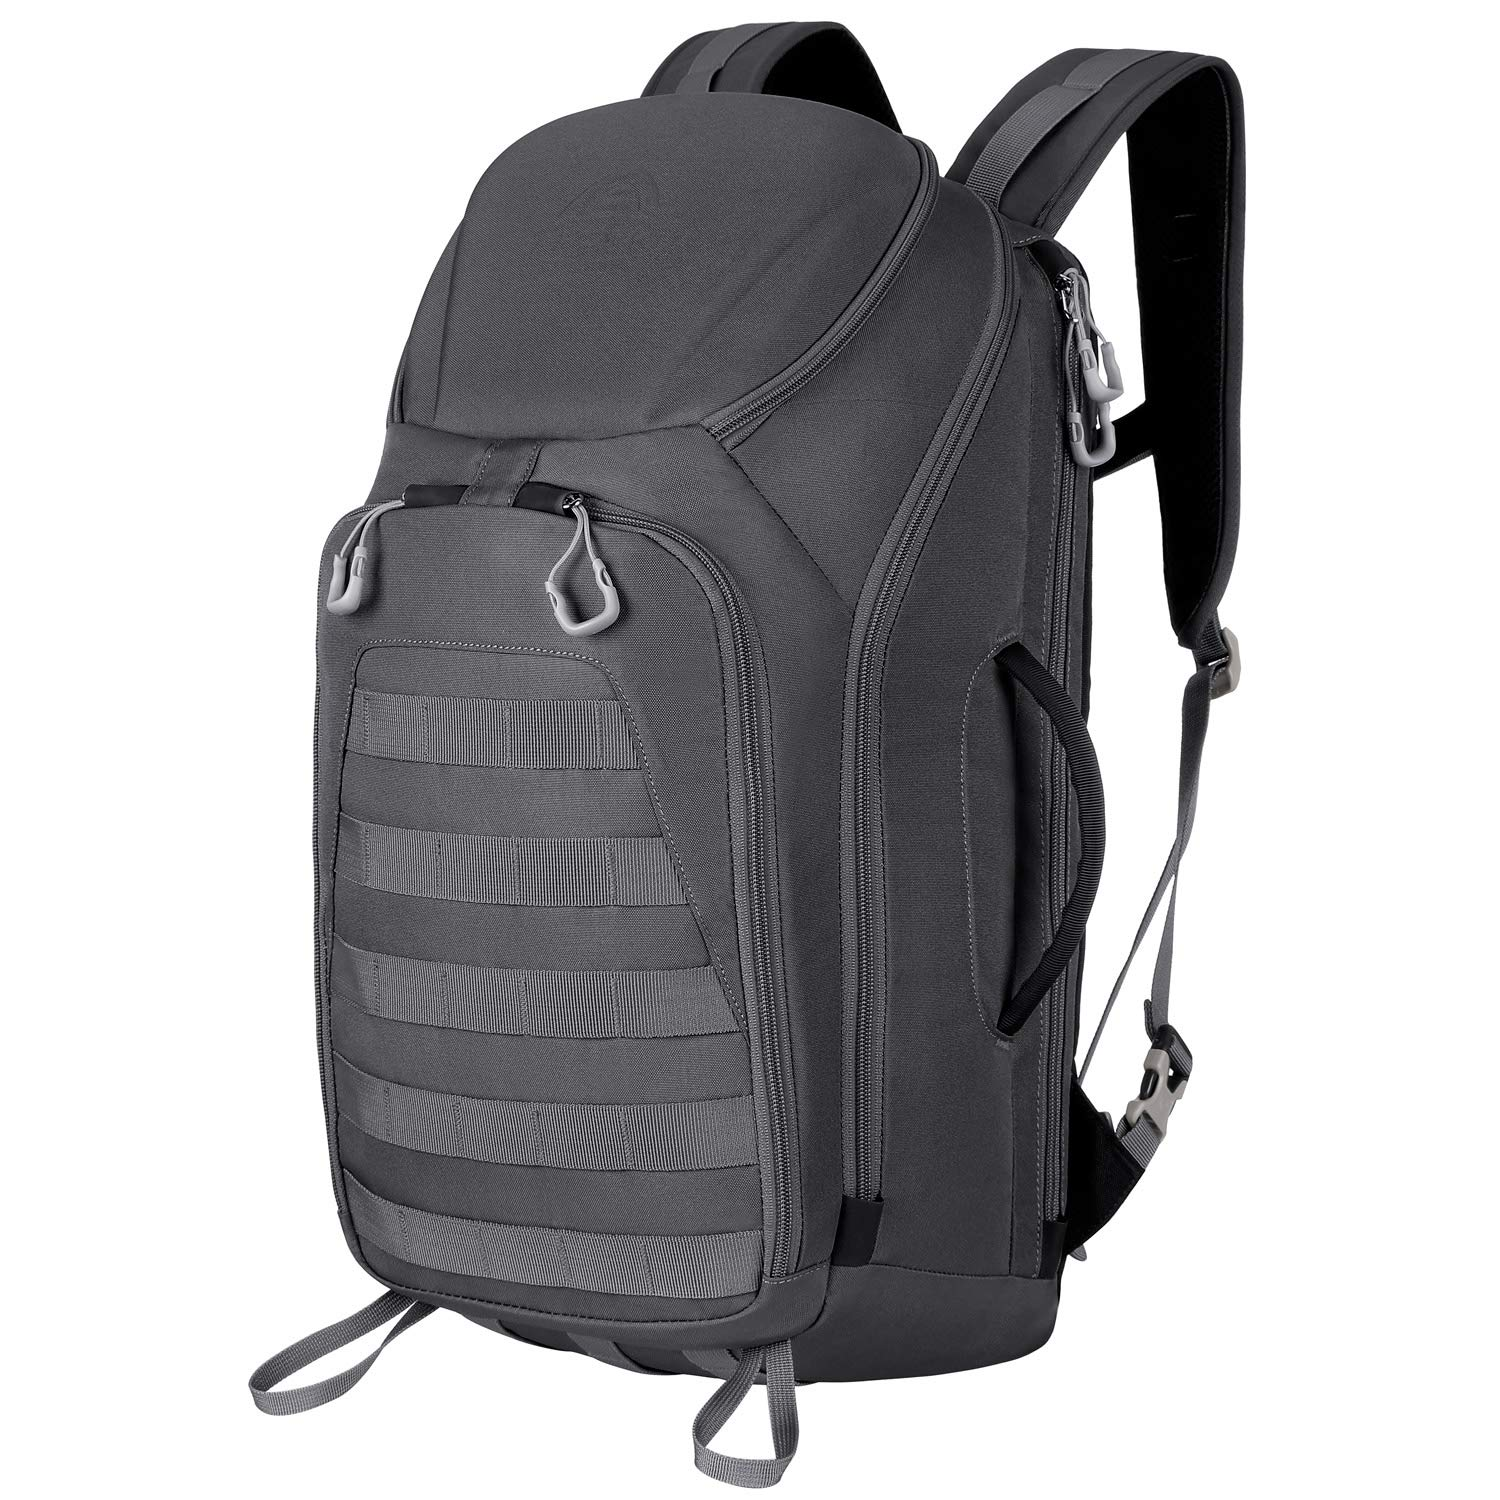 Aione Tactical Backpack Military Army Backpack Daypack 25L/30L/32L/52L Assault Pack Bug Out Bag with Hard Shell Top Pocket